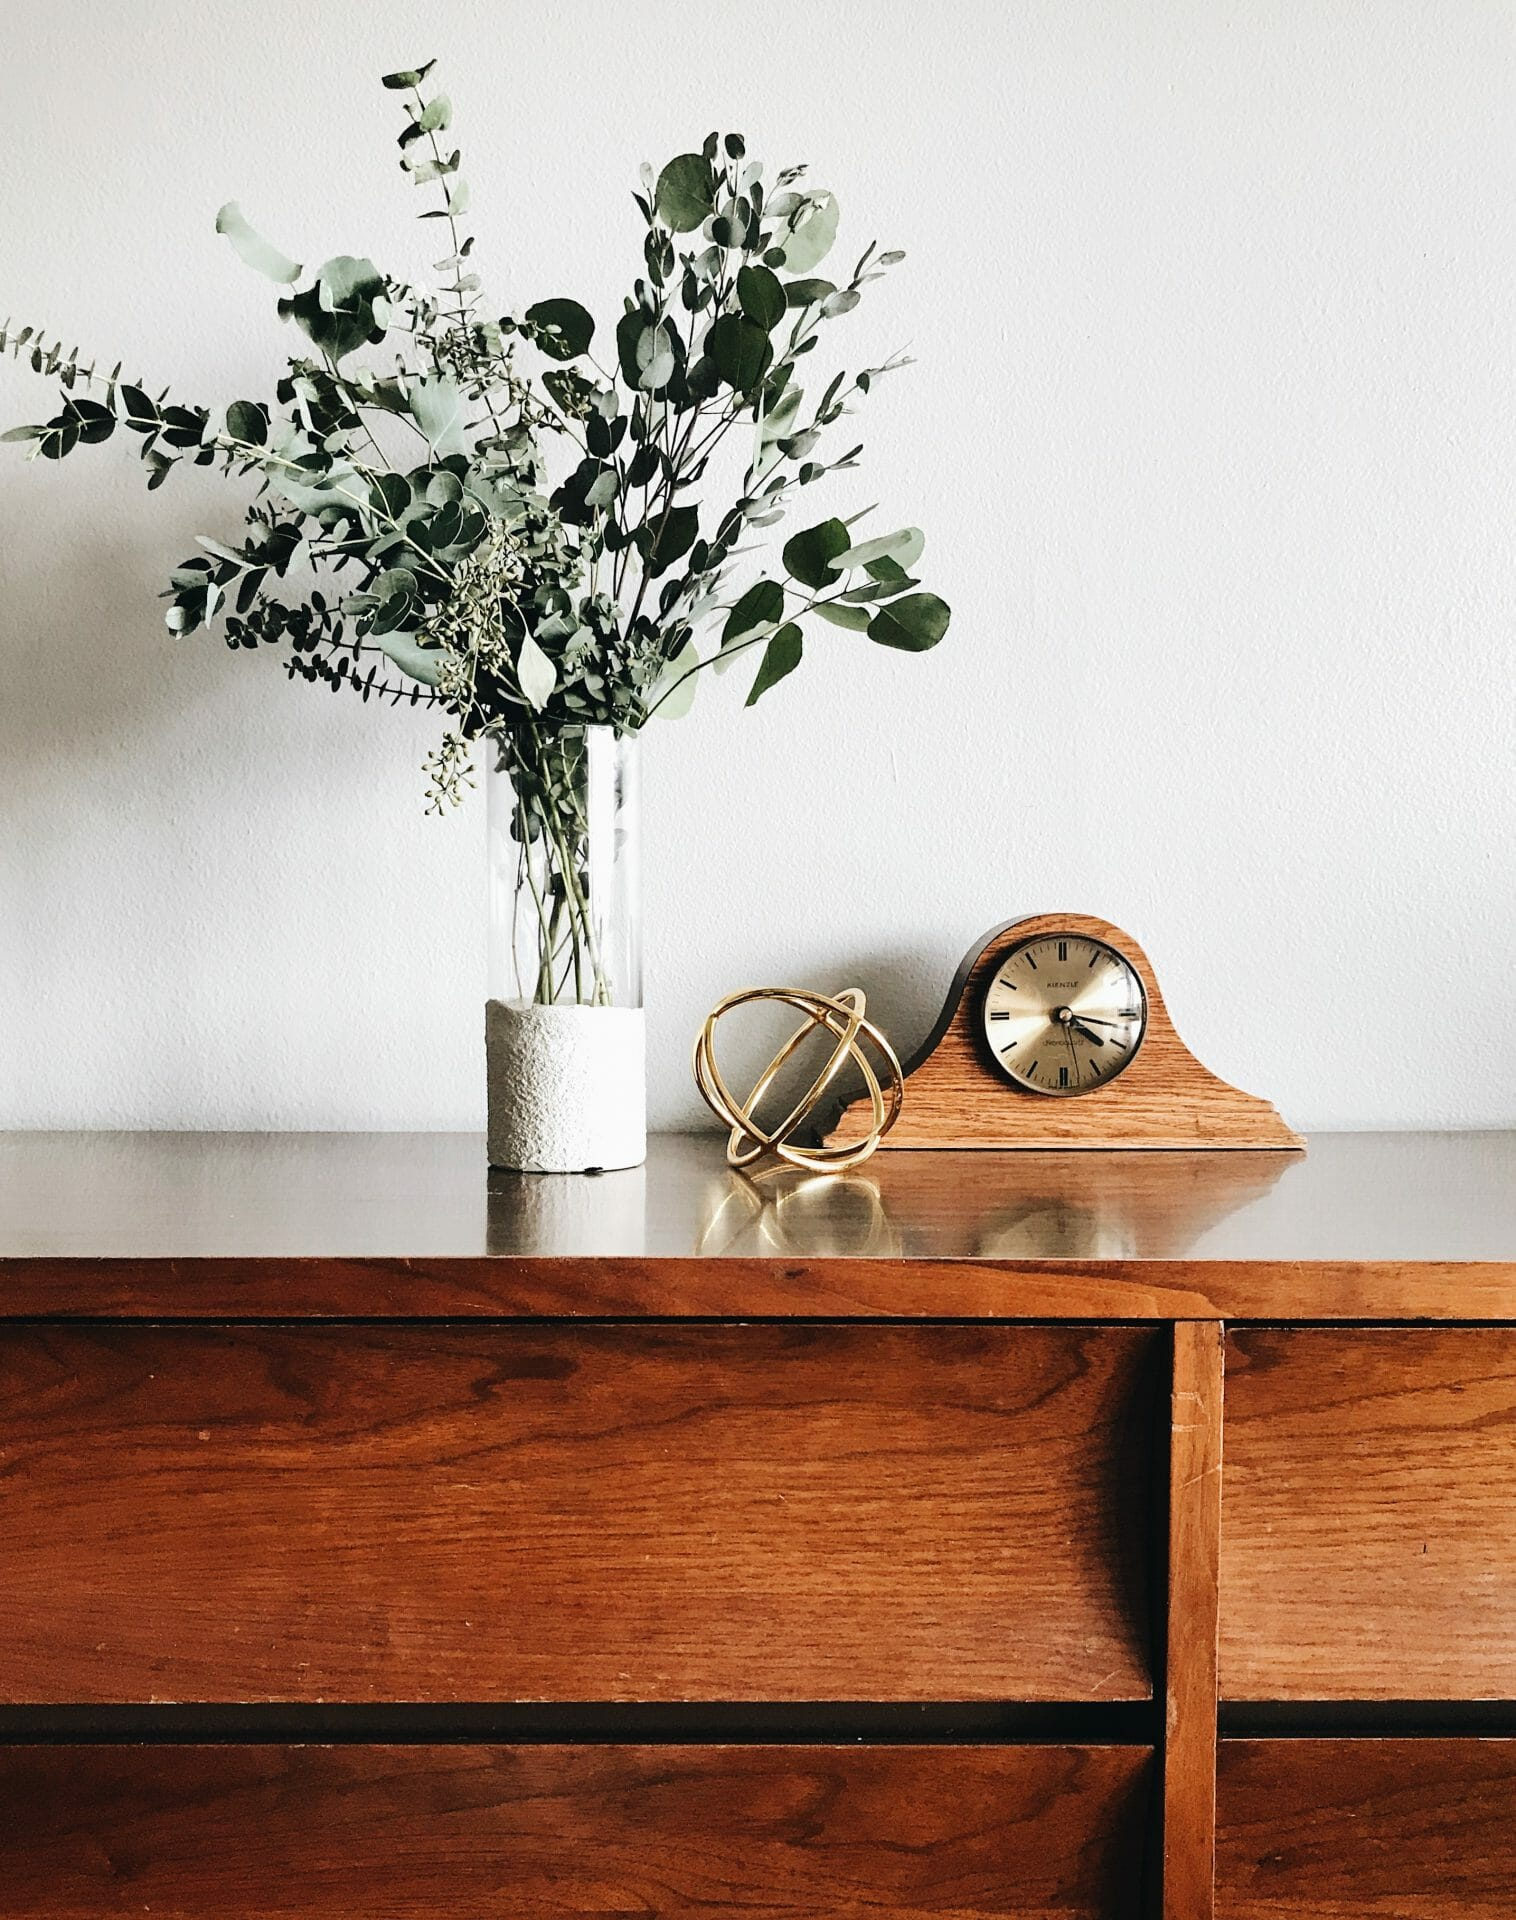 Picture of clock and plant on table for Real Estate News for Investors Podcast Episode #716